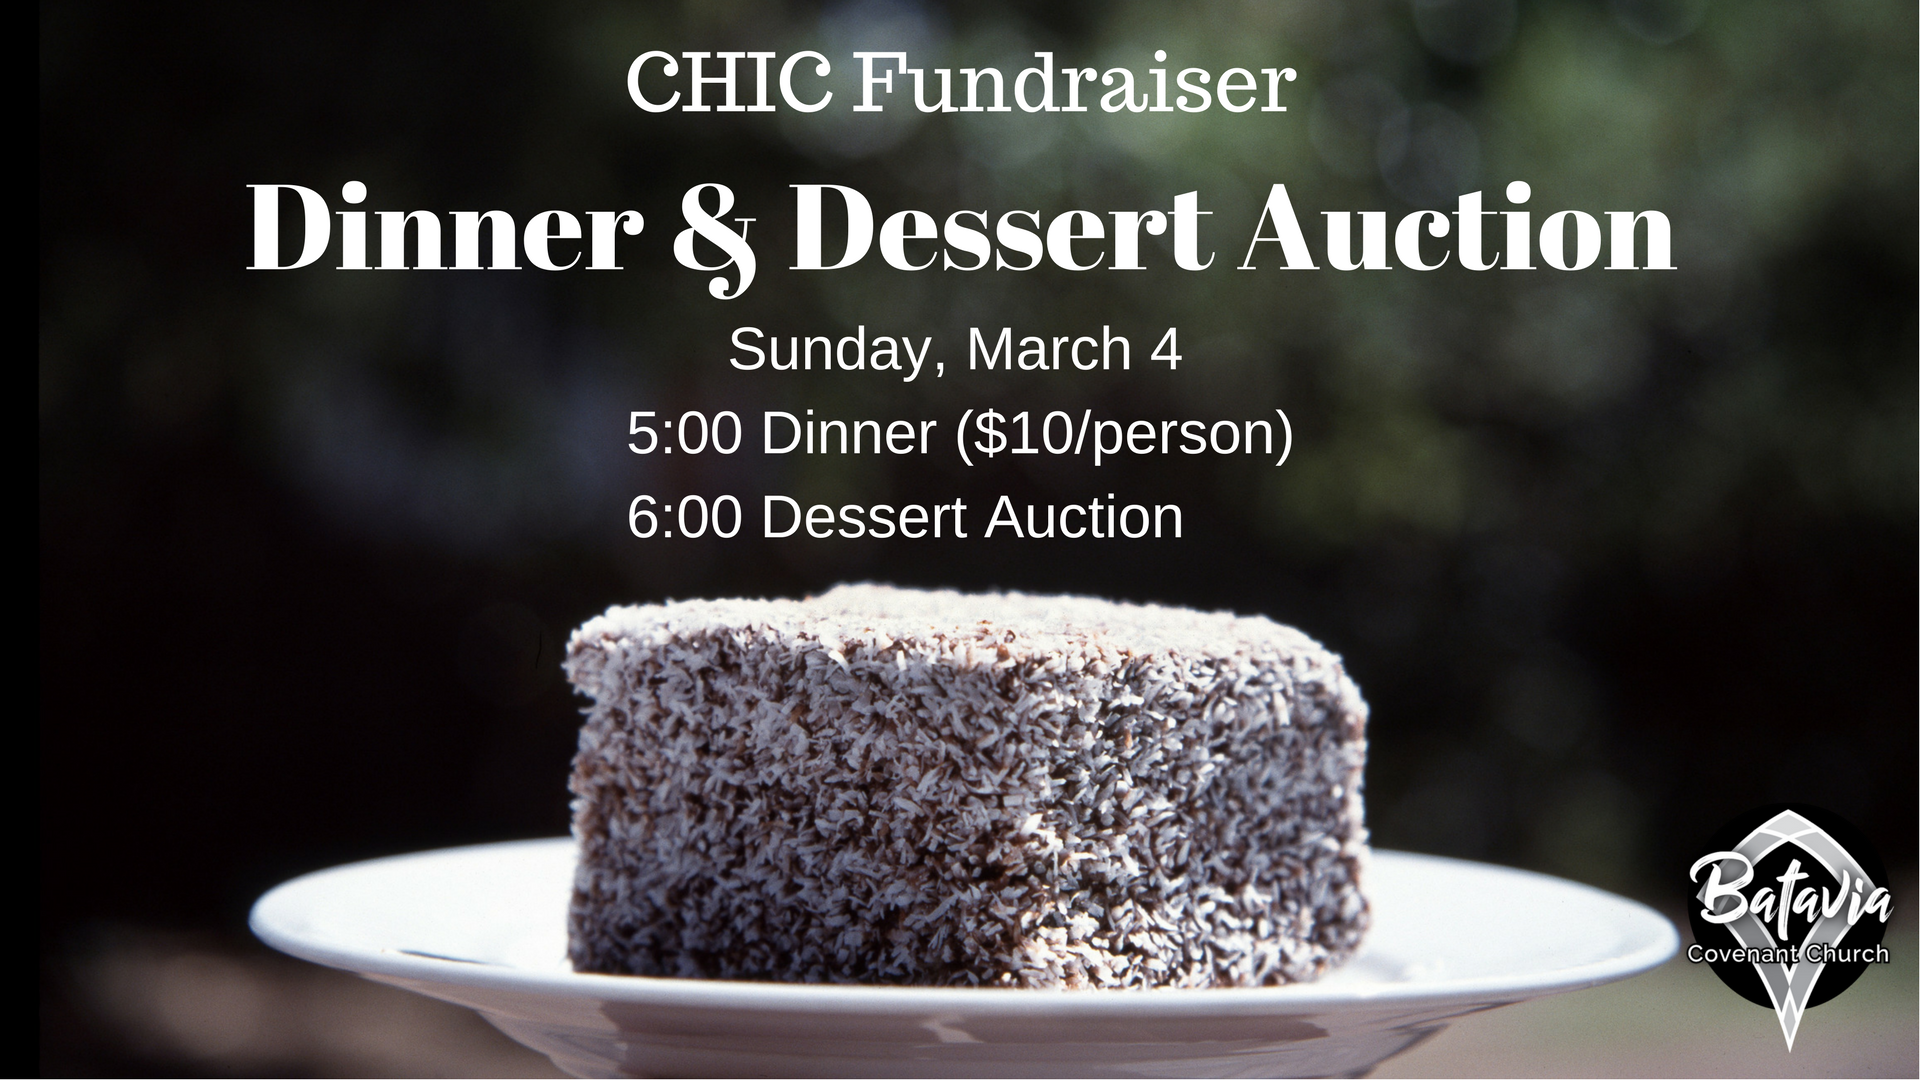 Dinner & Dessert Auction